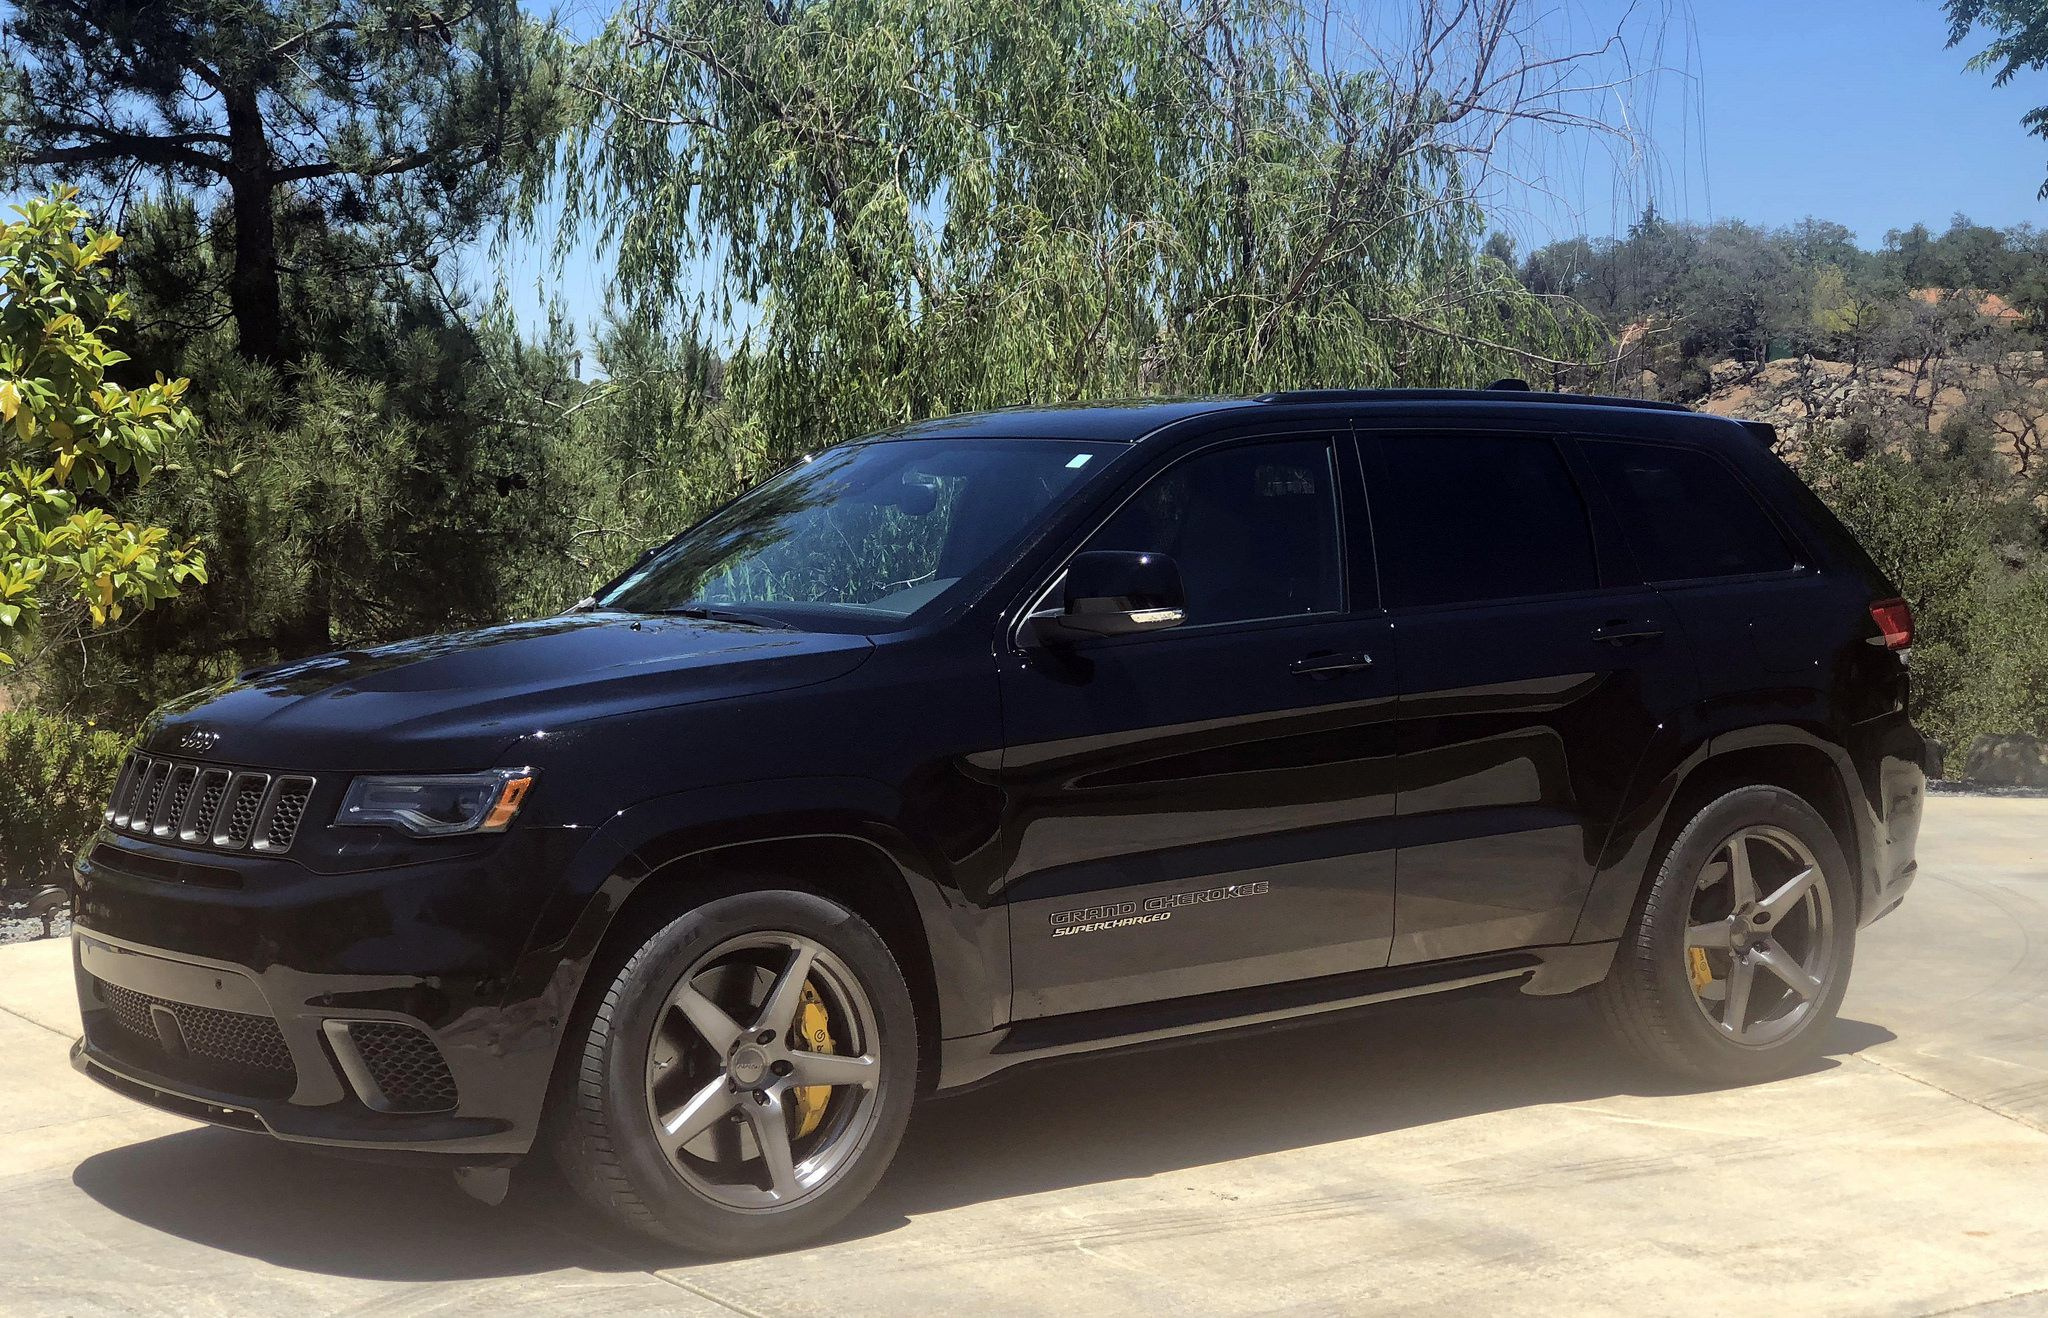 Jeep SRT, supercharged